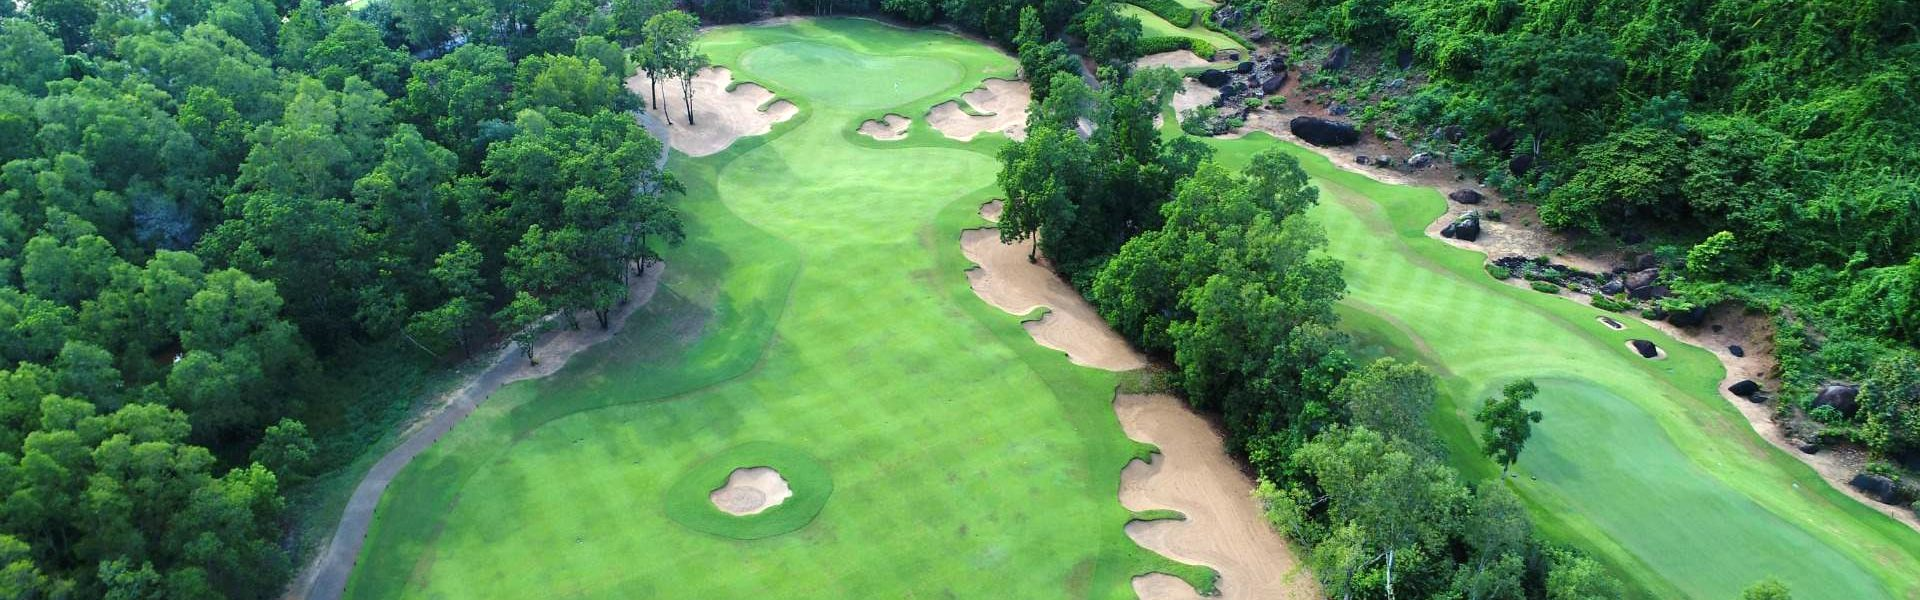 9 Golf Holidays in Vietnam: 3. Golf in Danang, Hue and Hoi An.